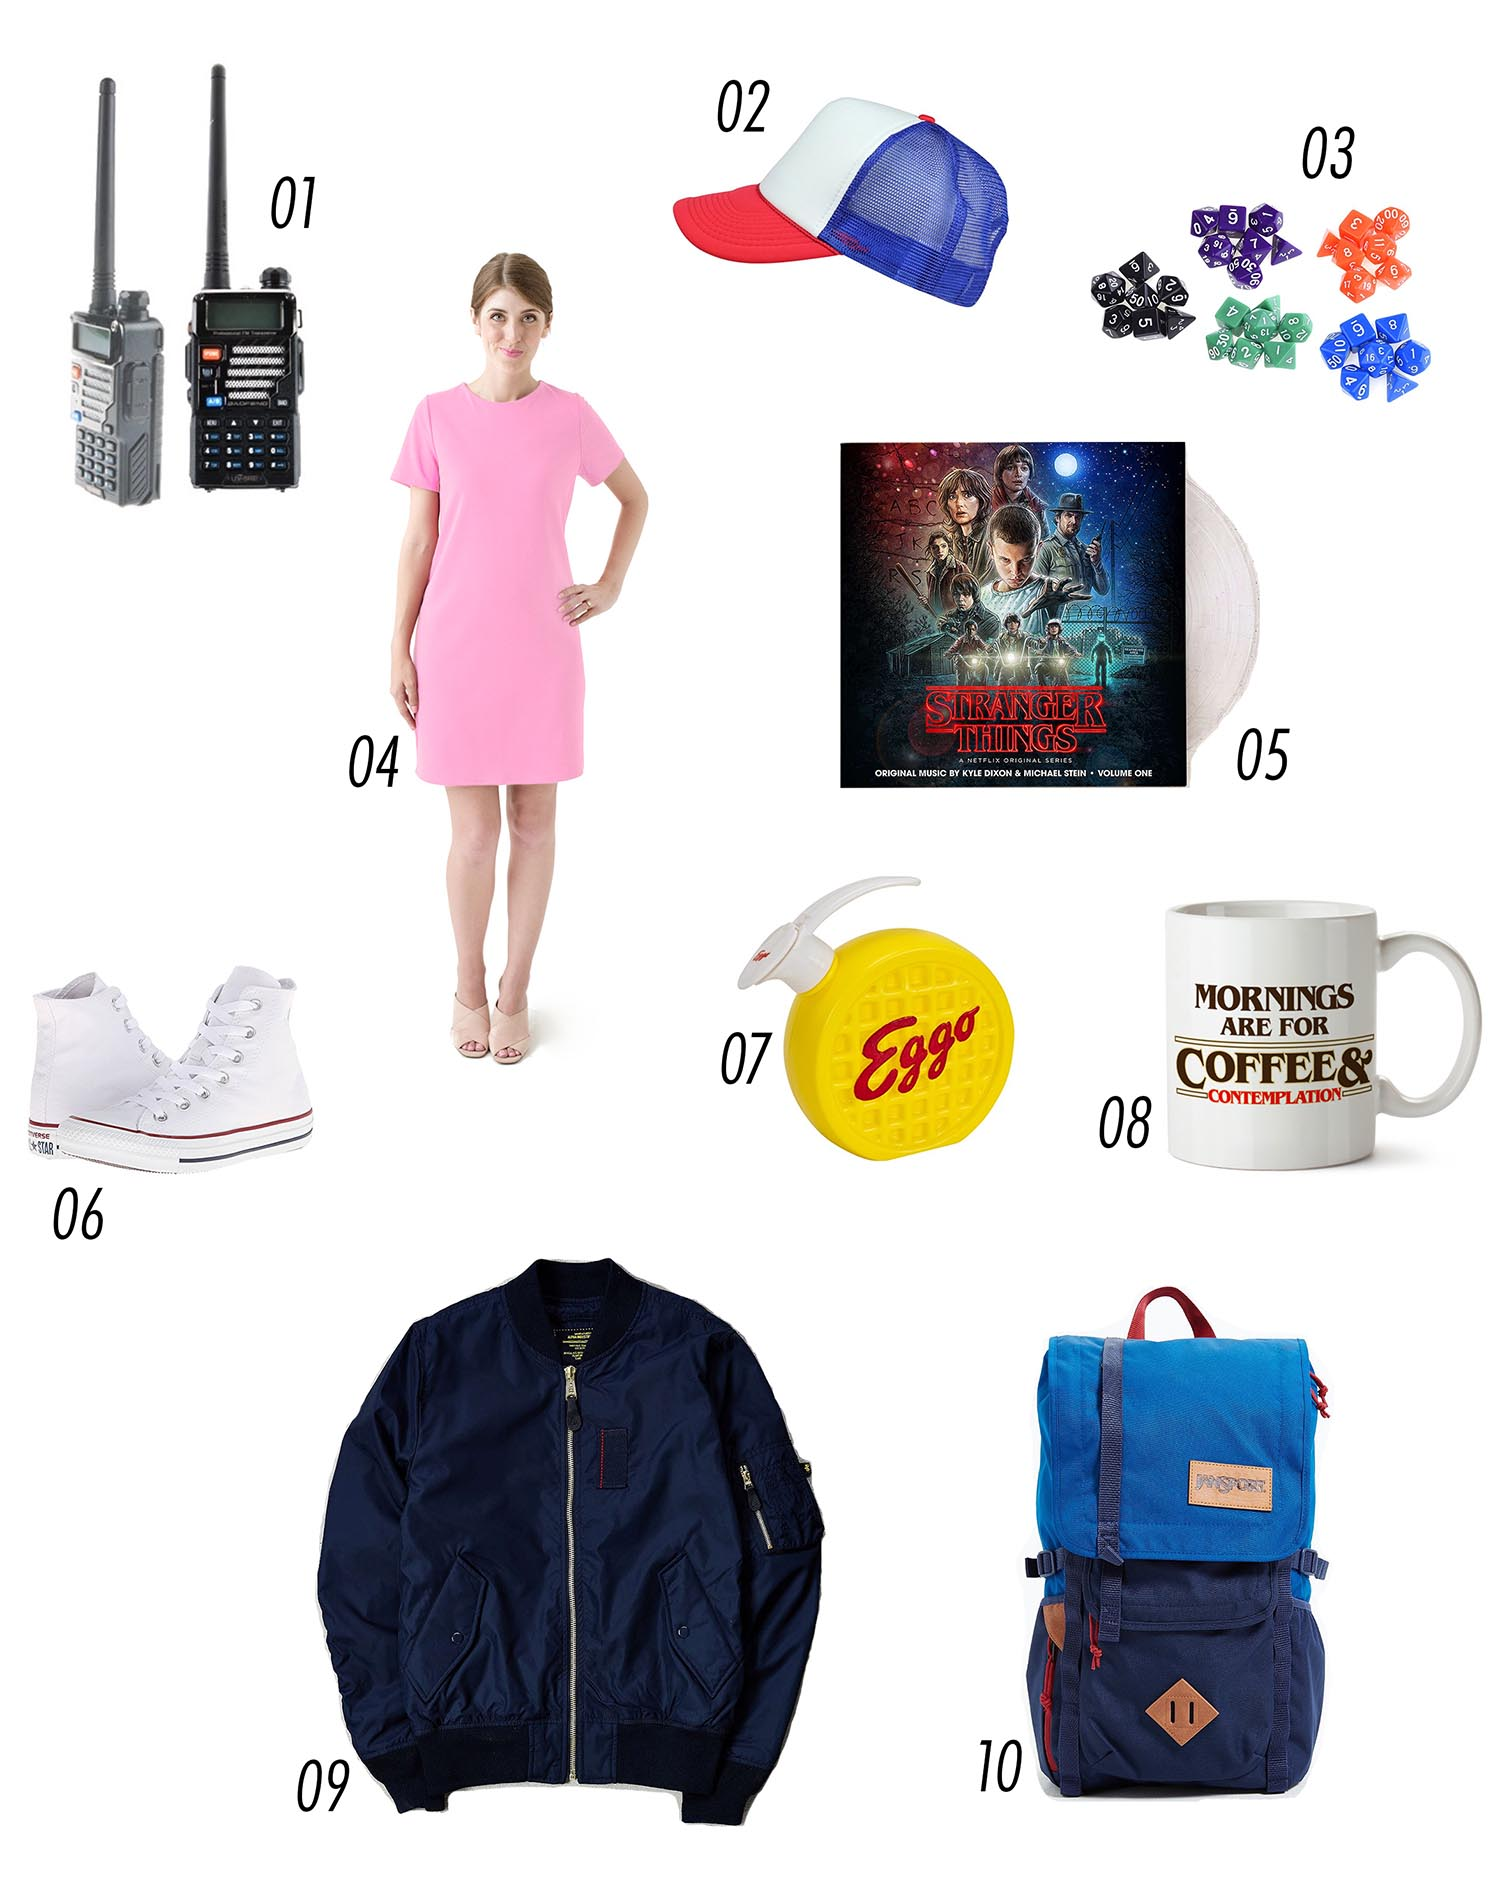 Stranger Things costume and gift guide